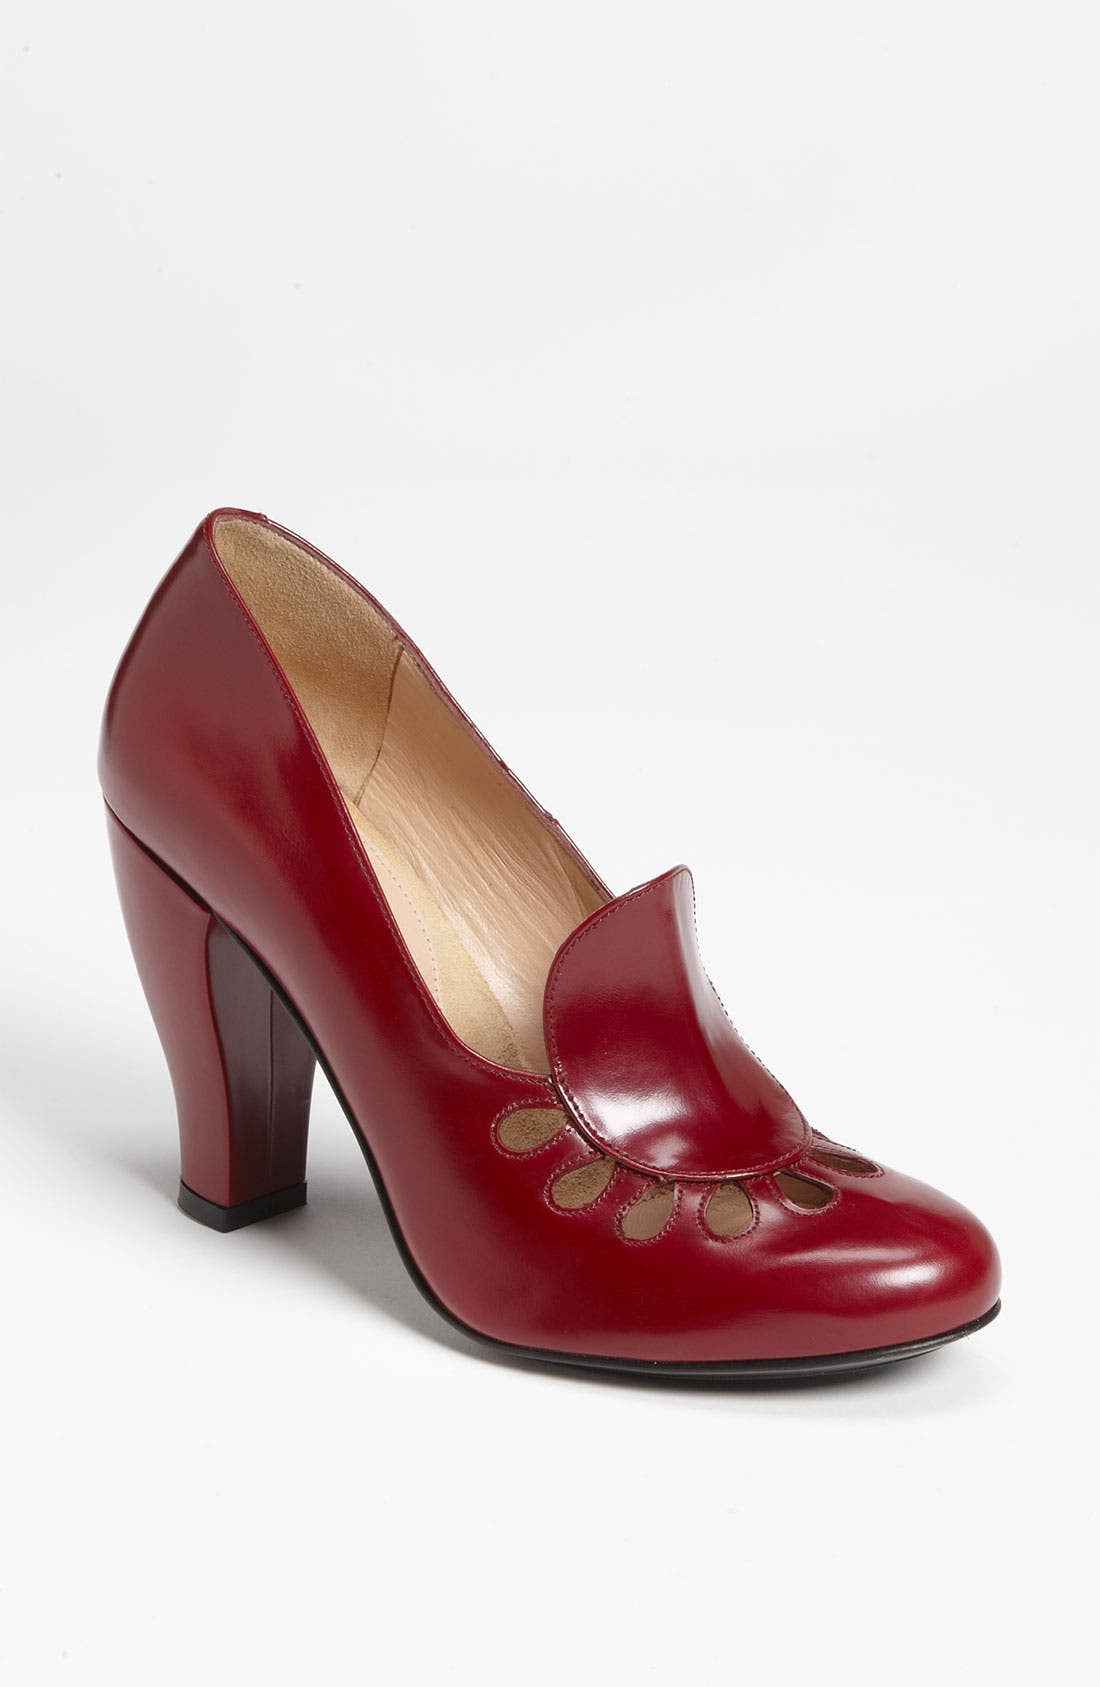 Main Image - Robert Clergerie 'Messine' Pump